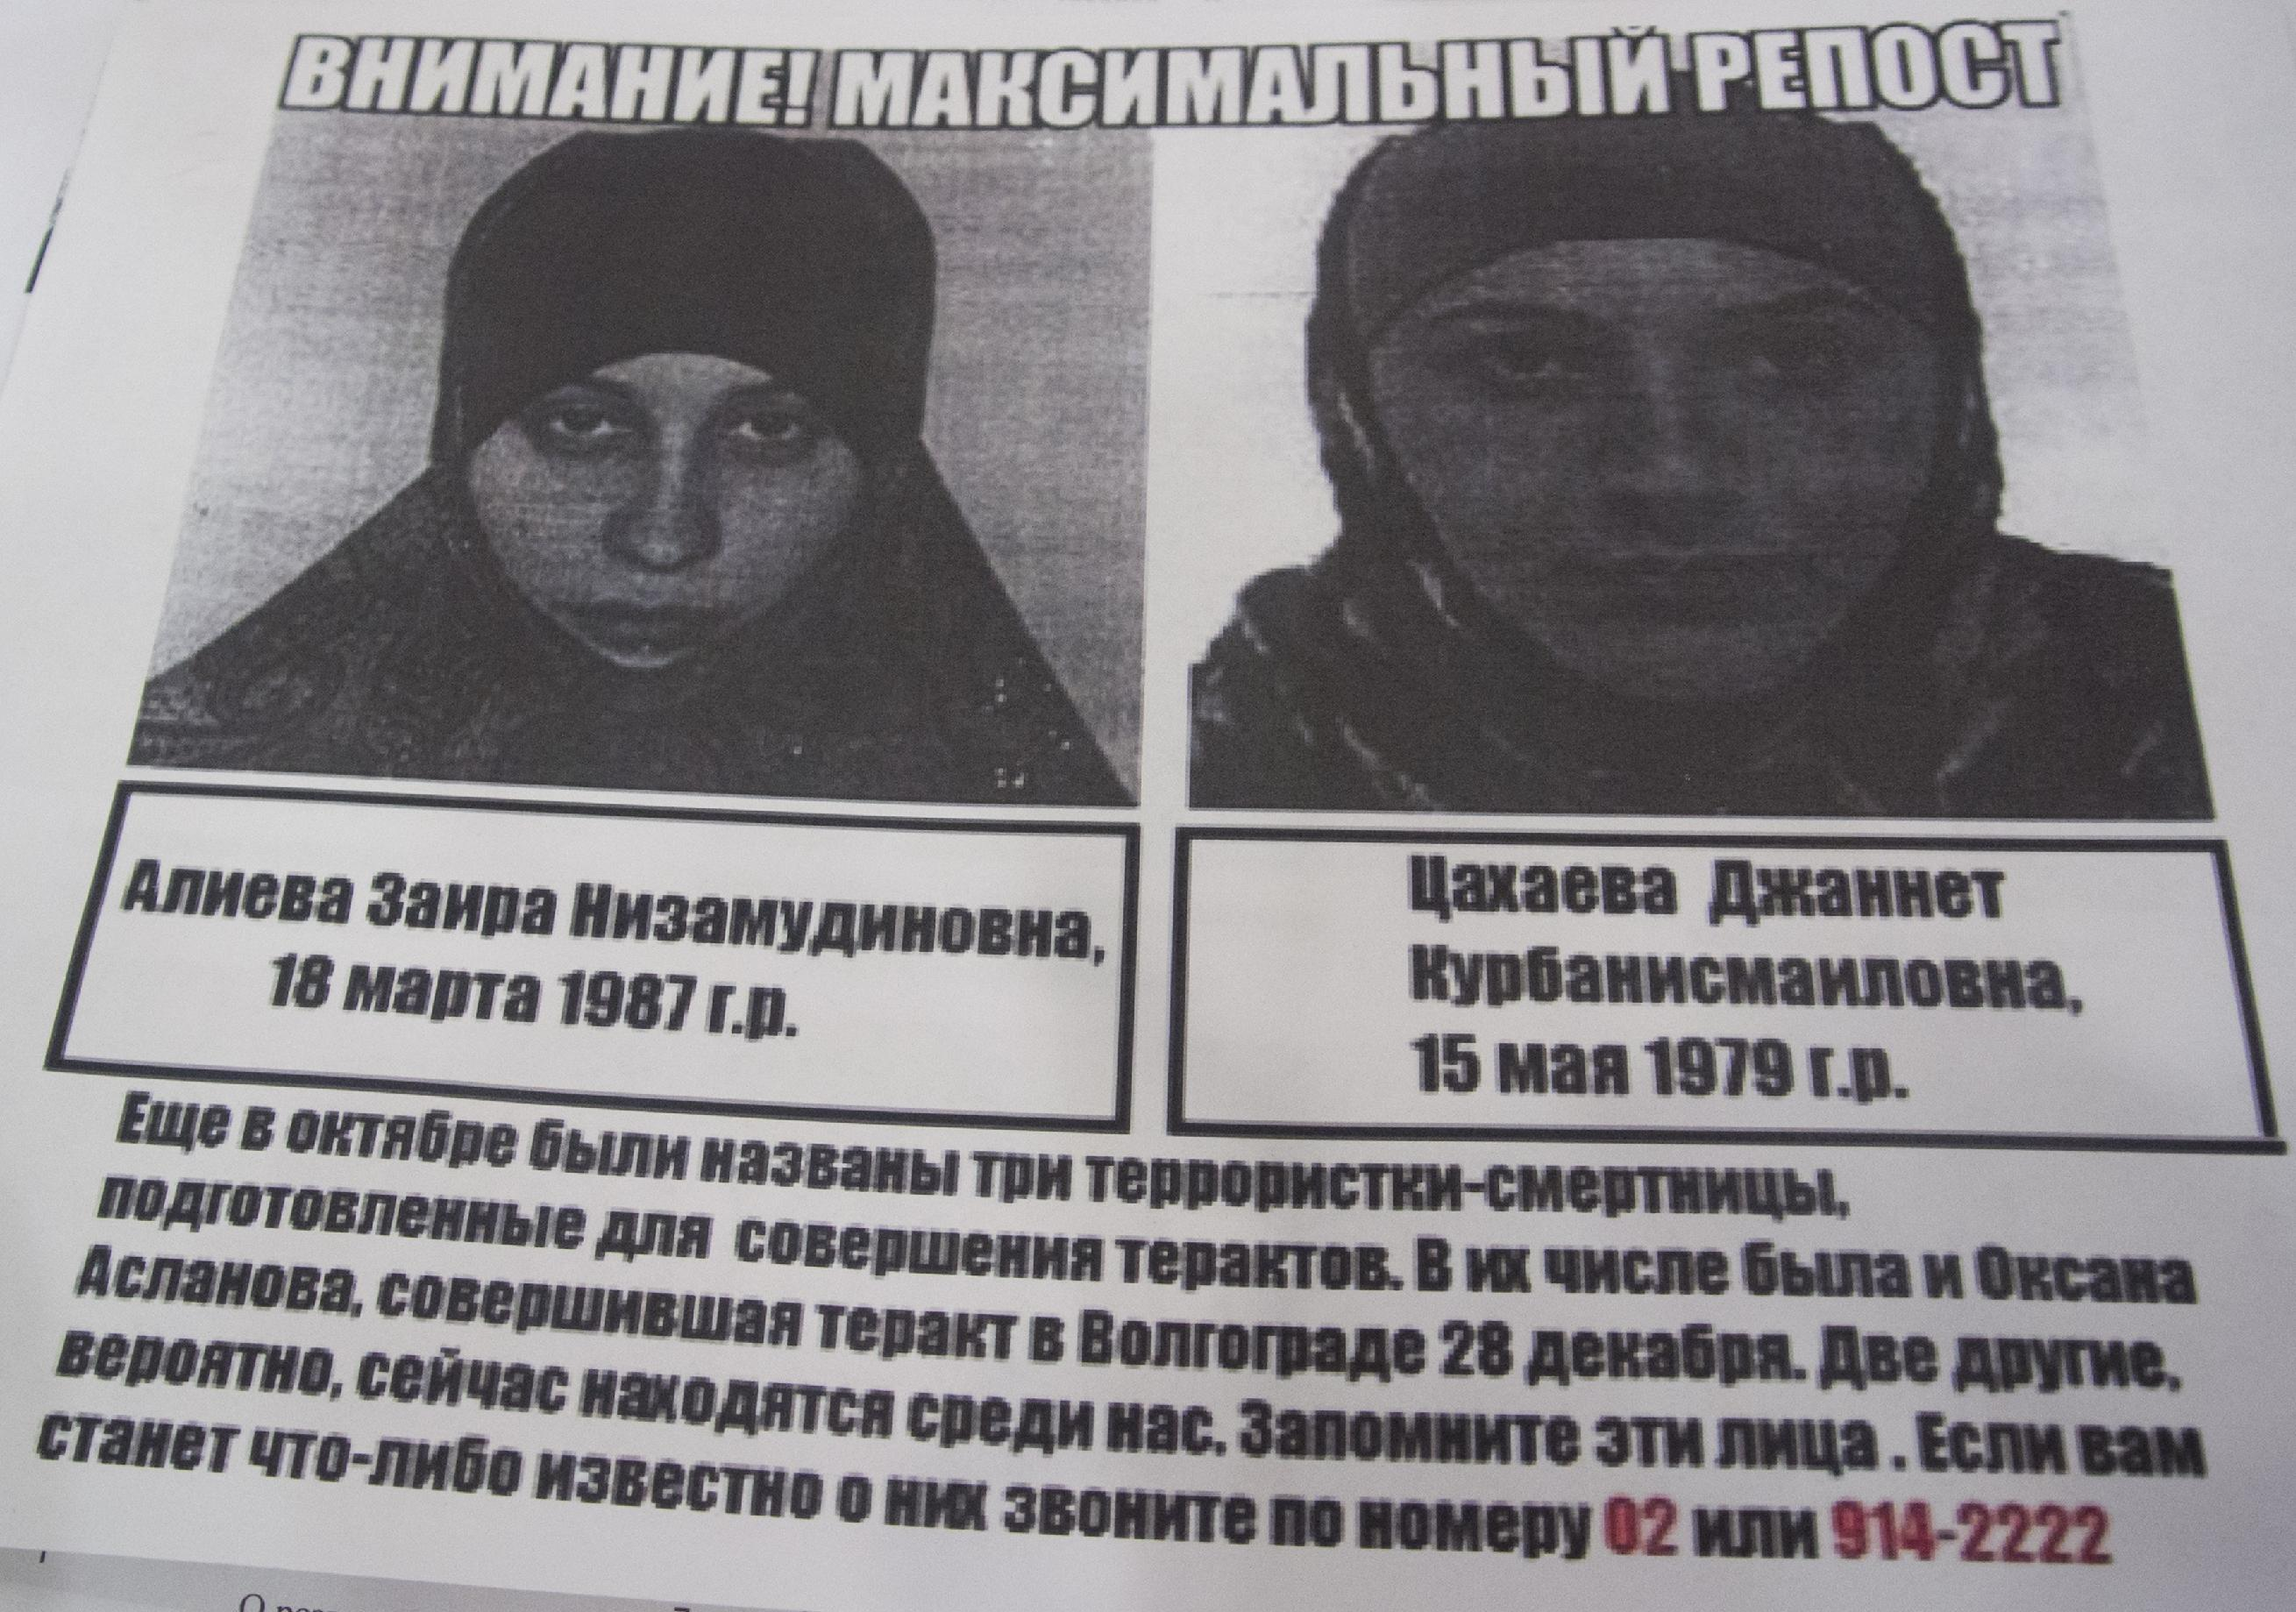 Black Widows Tied To Decade Of Terror In Russia - Sochi problems tweets